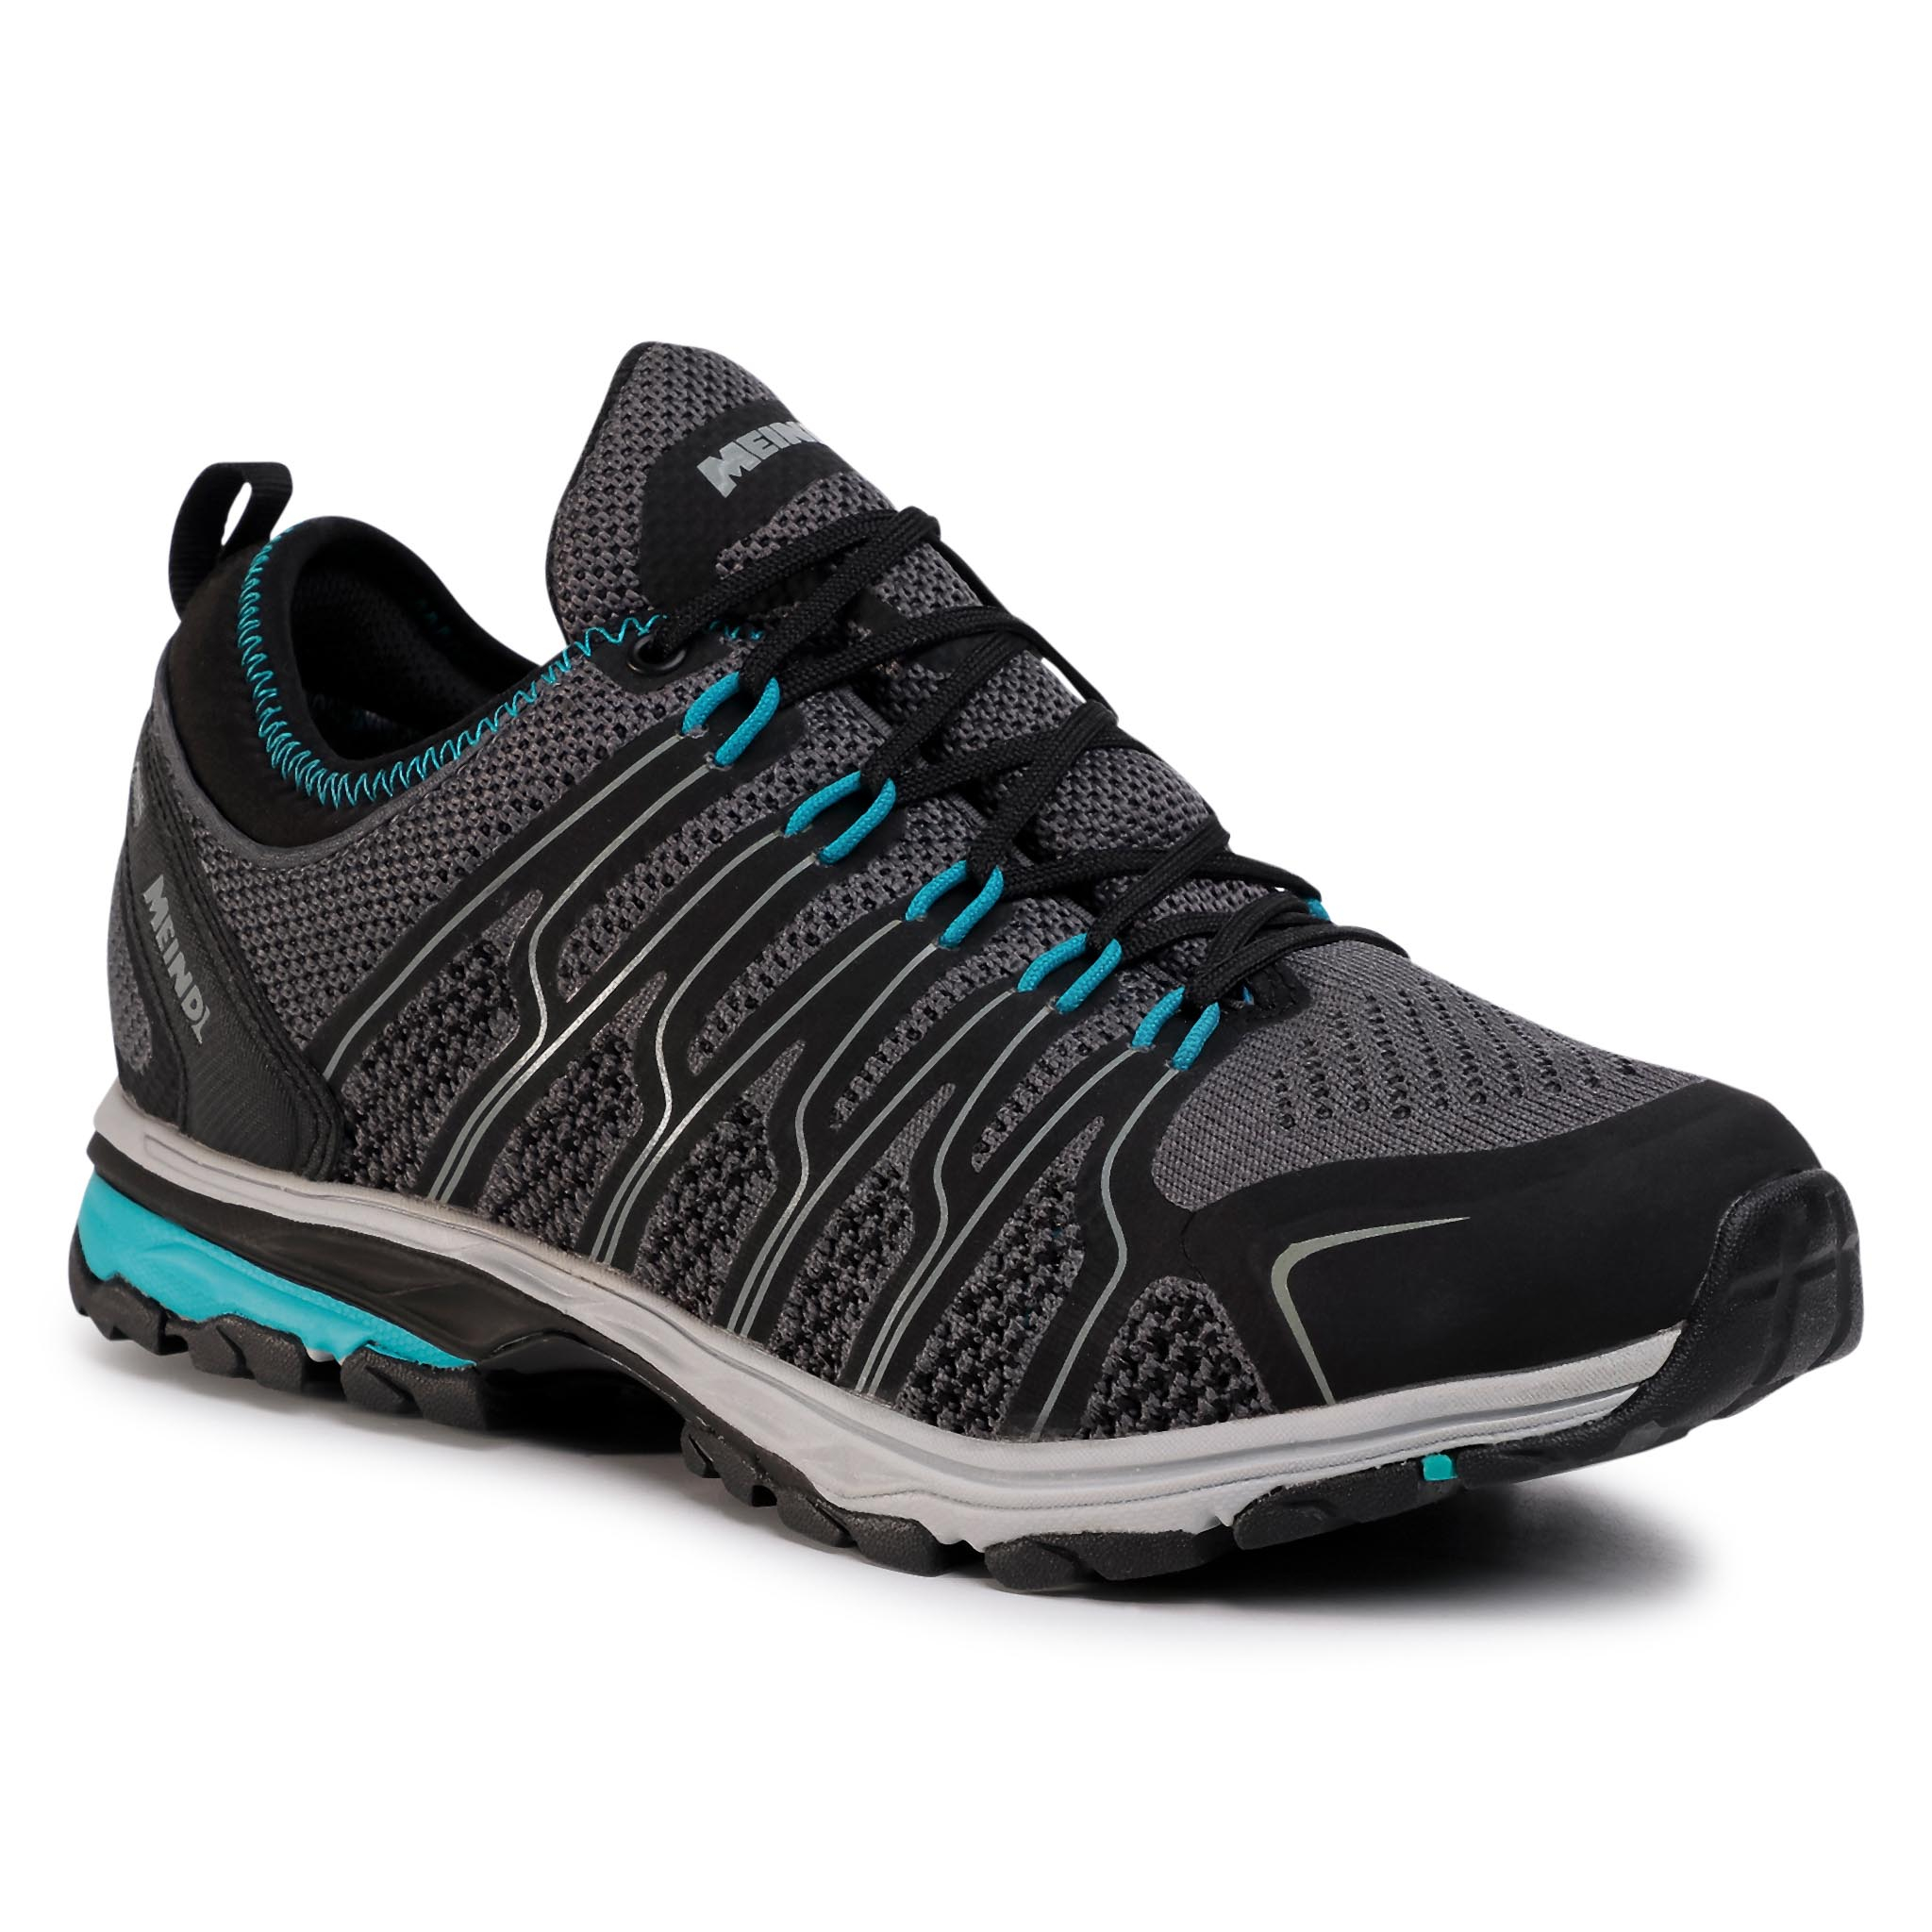 Trekkings Meindl - X-So Wave Lady Gtx Gore-Tex 3935 Anthrazit 31 imagine epantofi.ro 2021